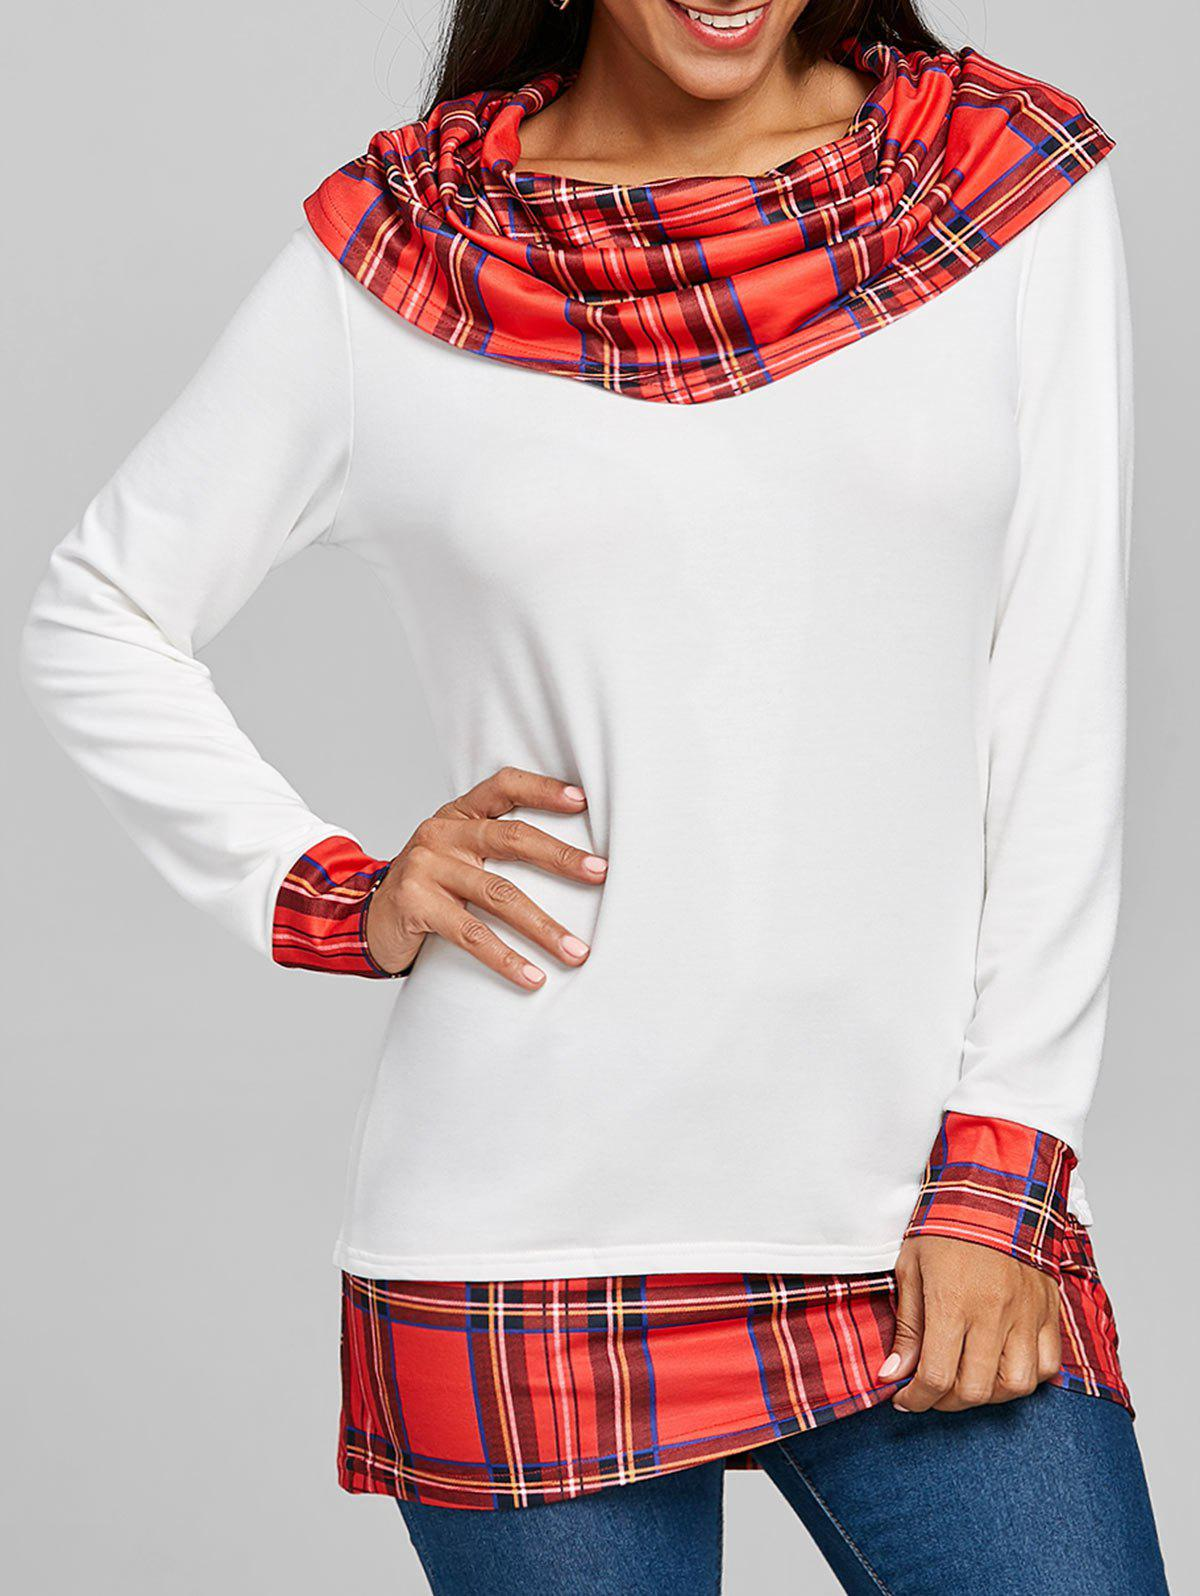 Cowl Neck Plaid Panel Tunic Top marled plaid cowl neck top